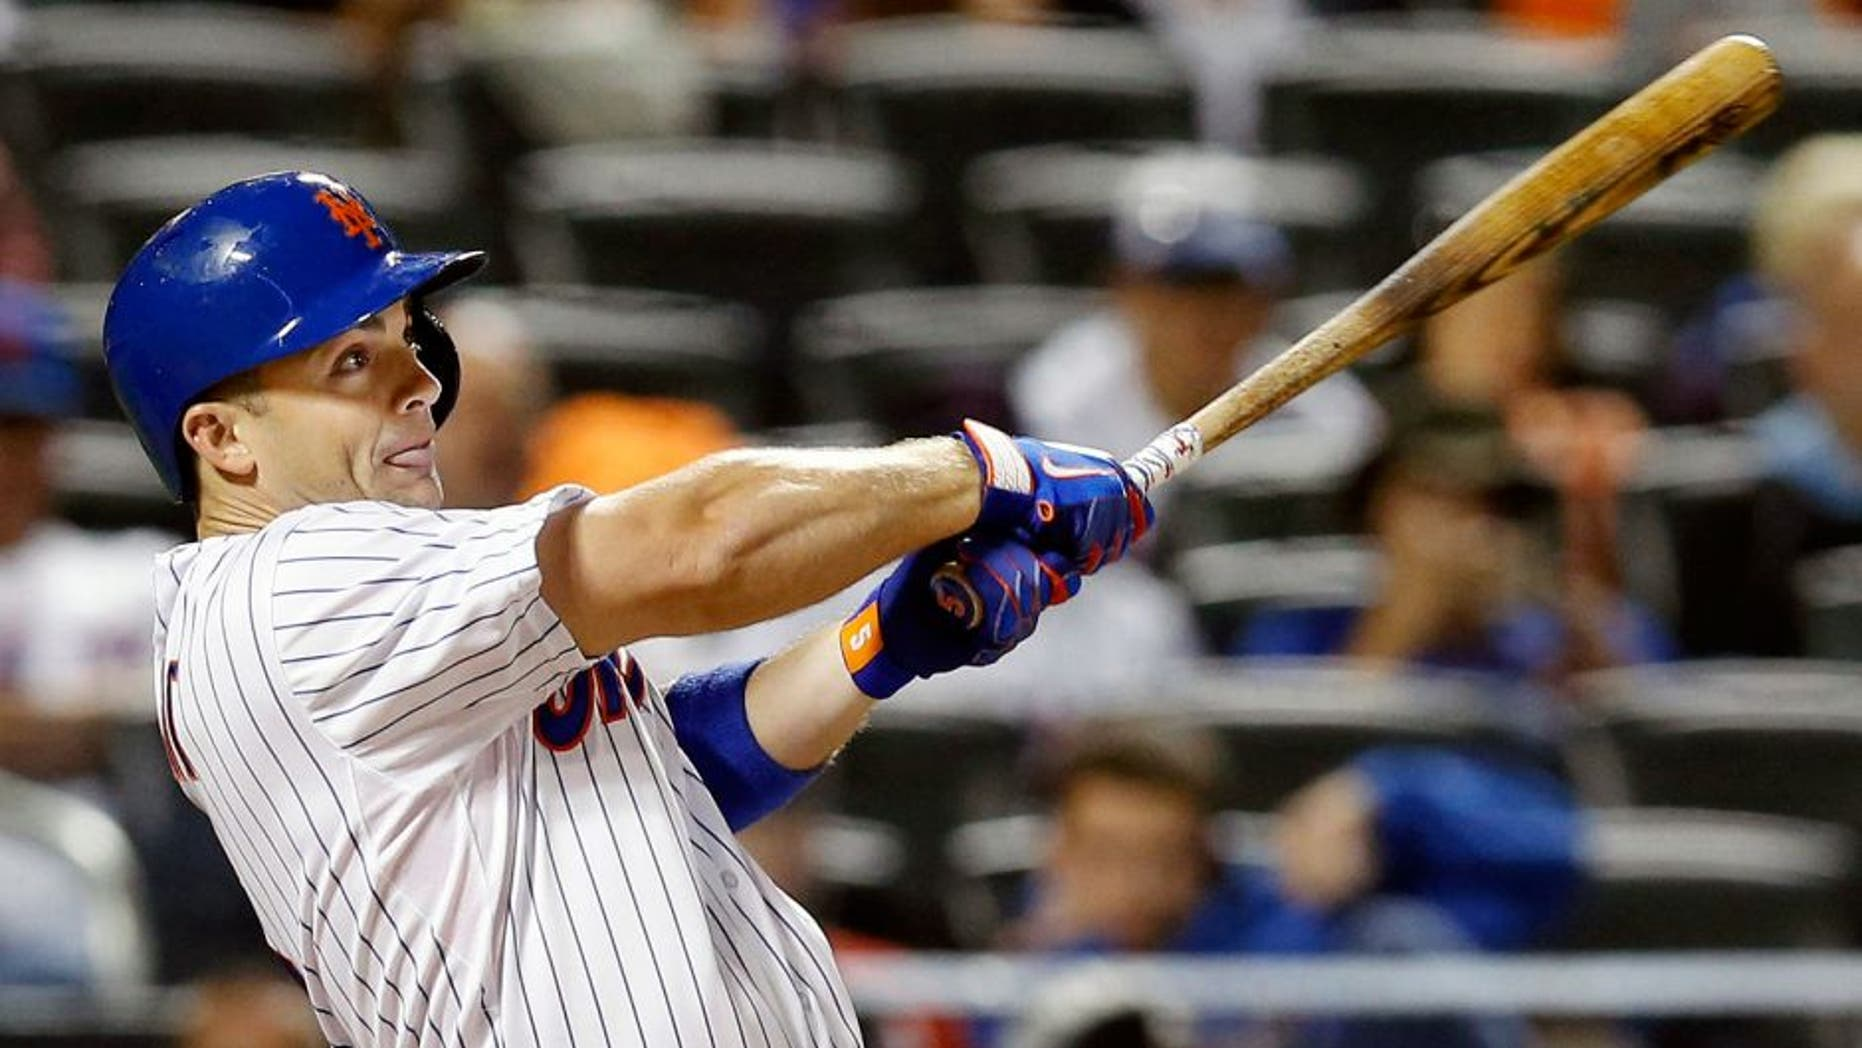 New York Mets' David Wright hits a seventh-inning, RBI, ground-rule double in a baseball game against the Miami Marlins in New York, Monday, Sept. 14, 2015. (AP Photo/Kathy Willens)